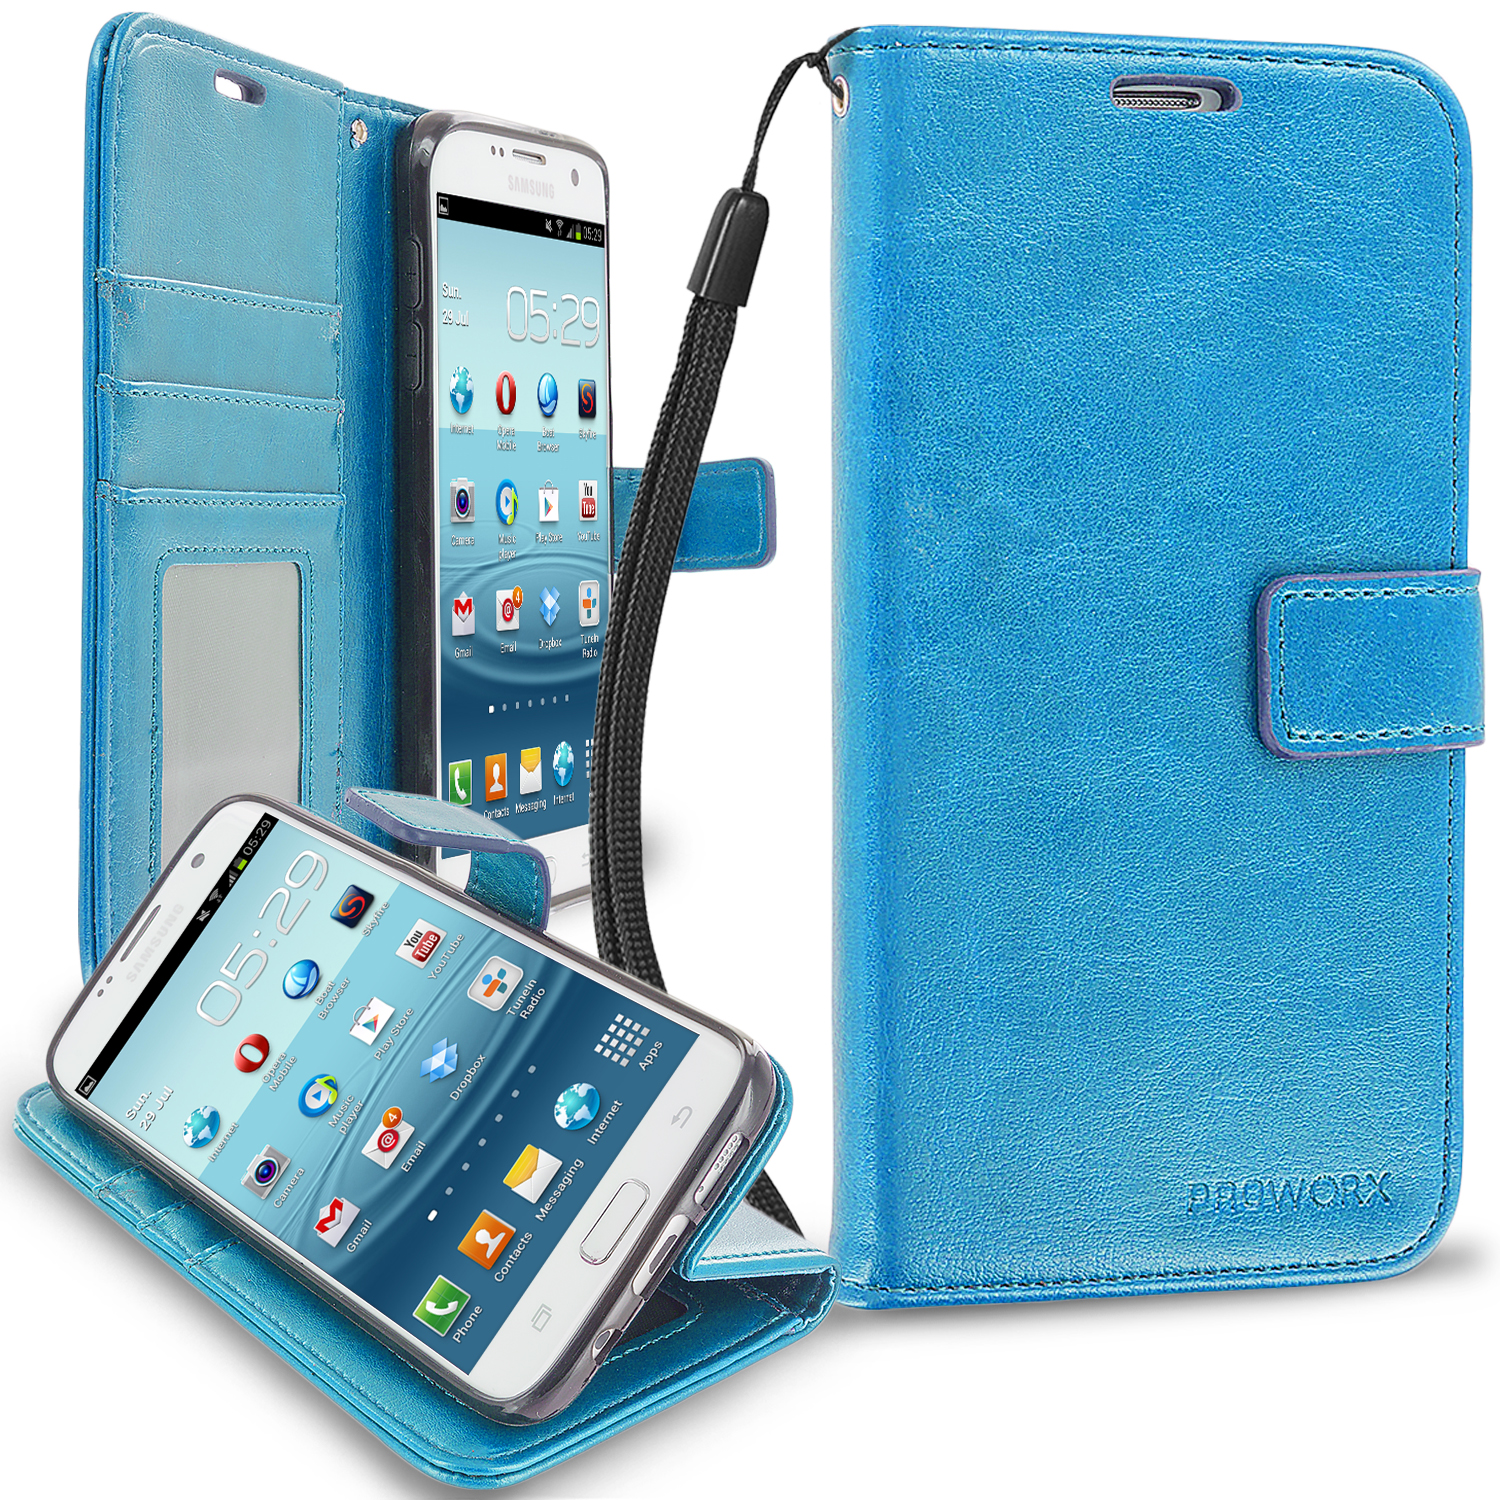 Samsung Galaxy S7 Edge Baby Blue ProWorx Wallet Case Luxury PU Leather Case Cover With Card Slots & Stand